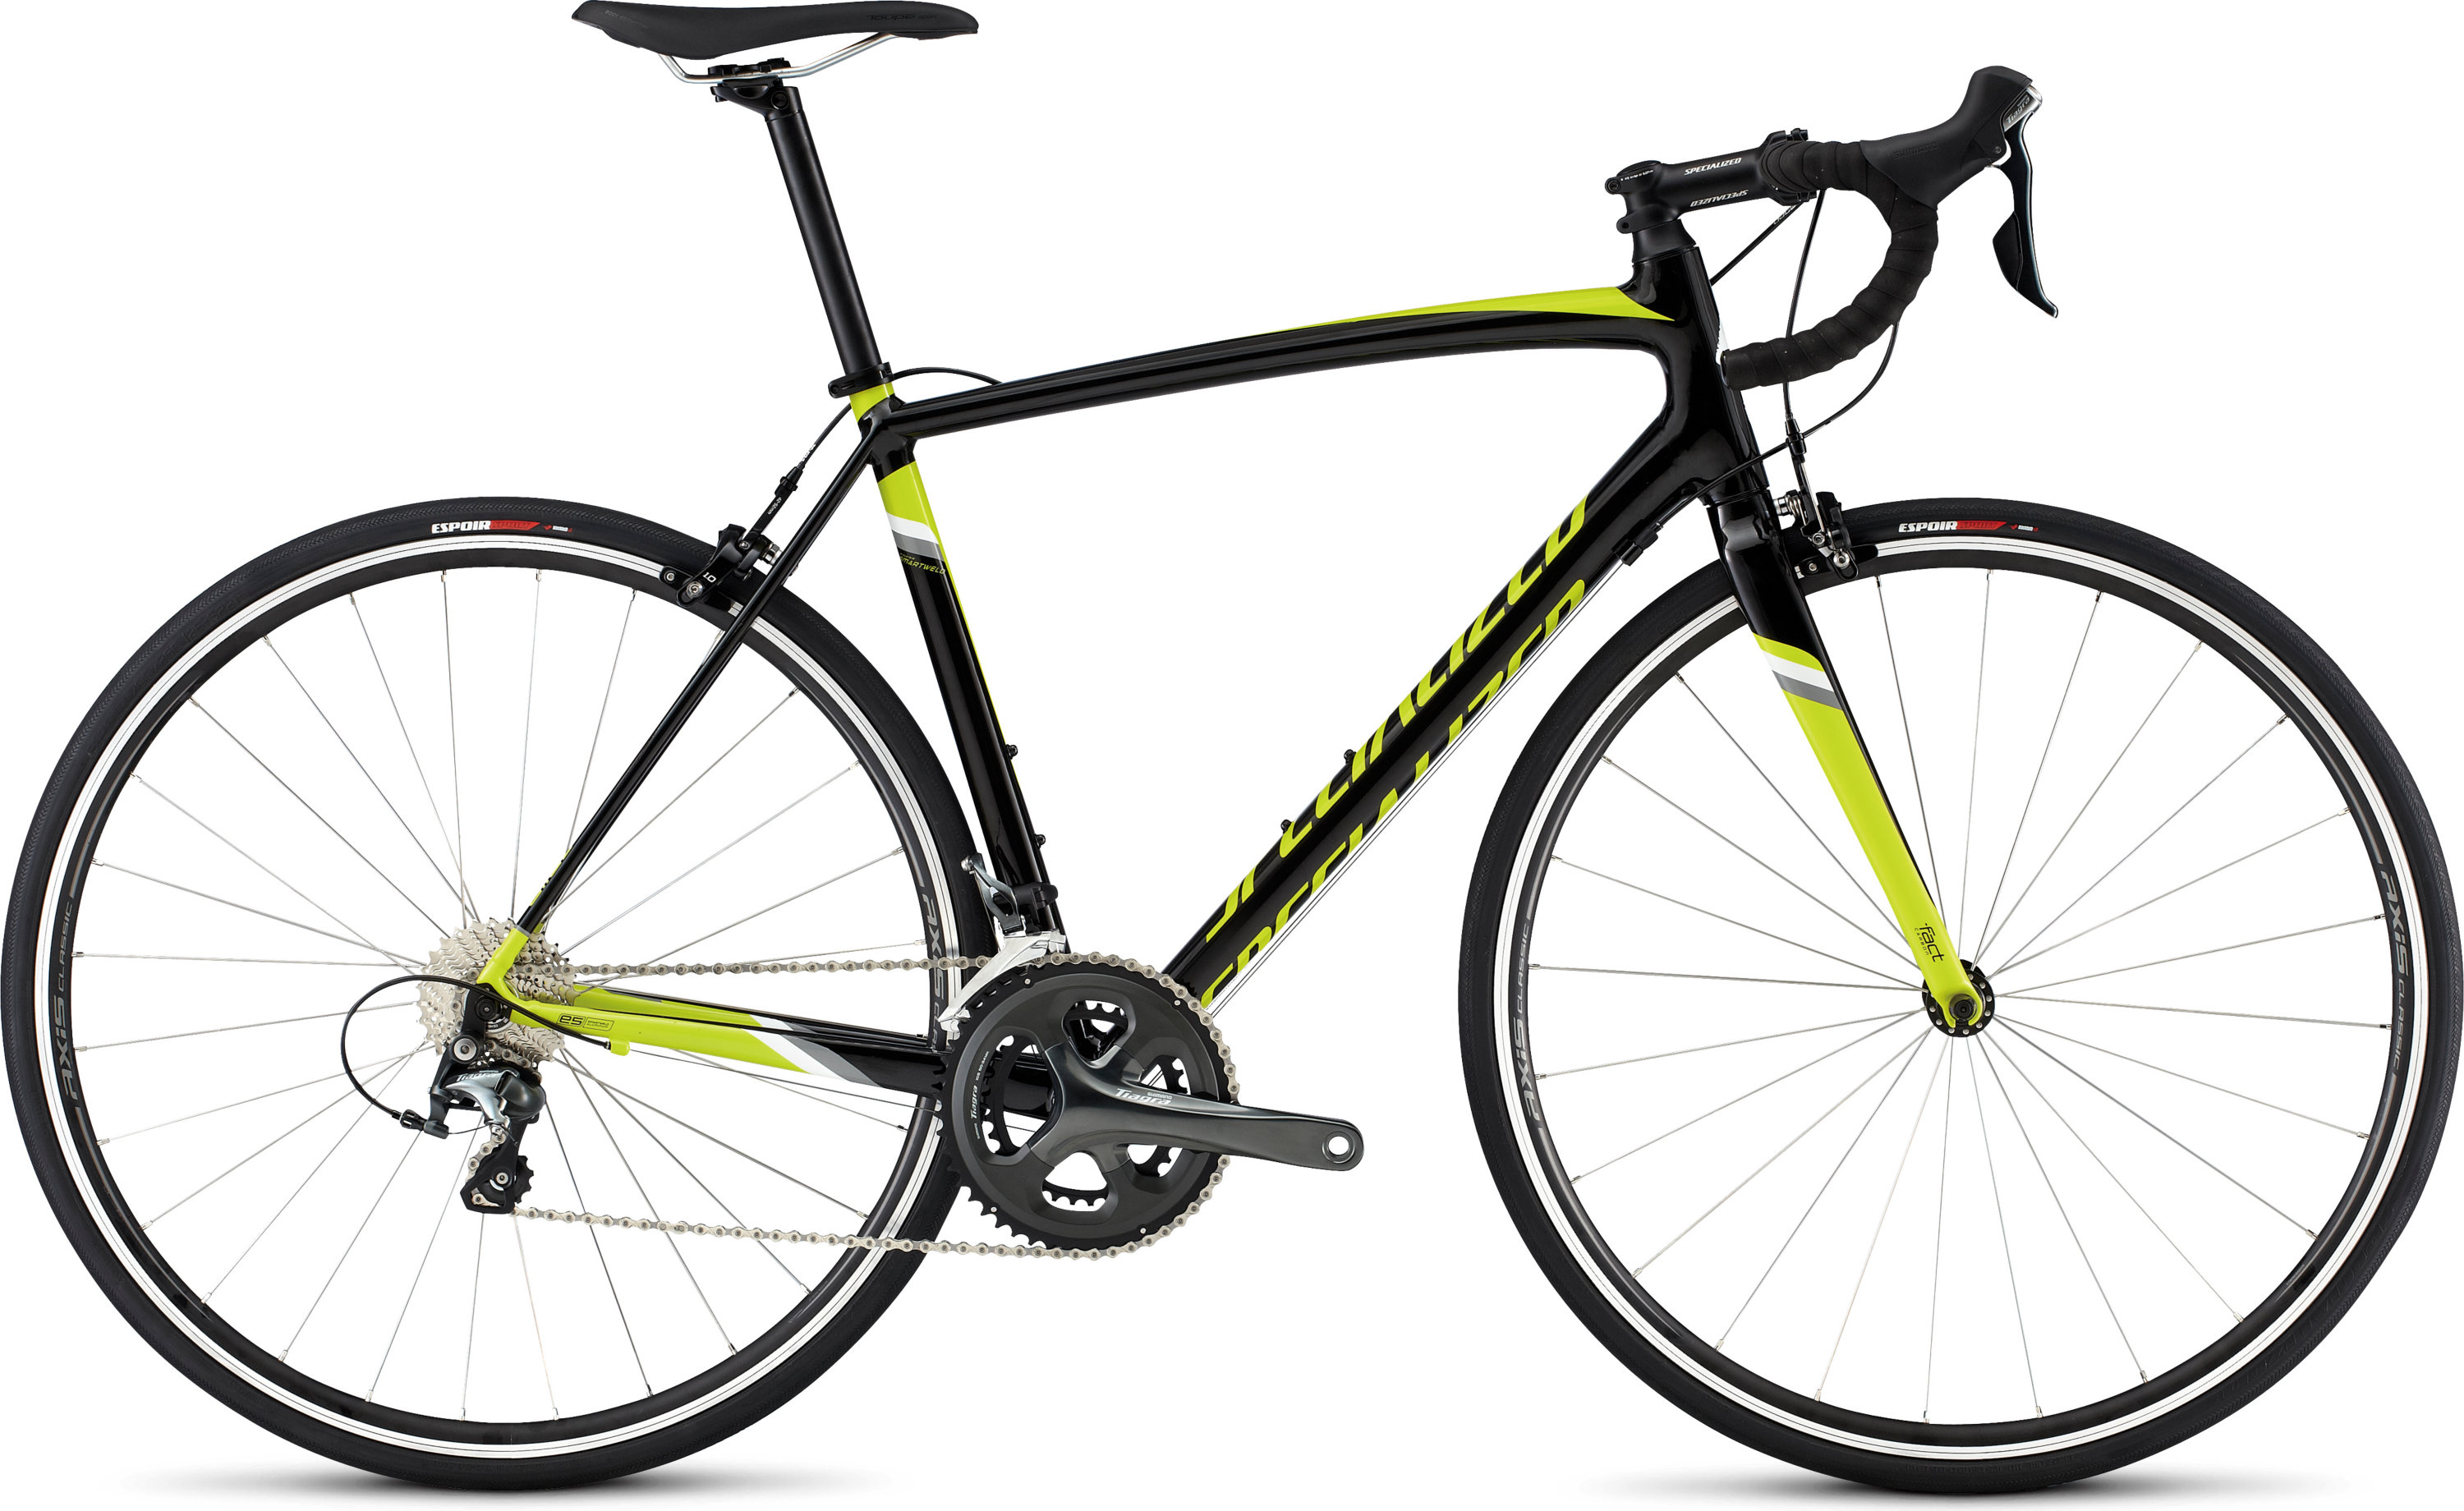 SPECIALIZED ALLEZ ELITE DSW TARBLK/TEAMYEL/WHT 49 - schneider-sports